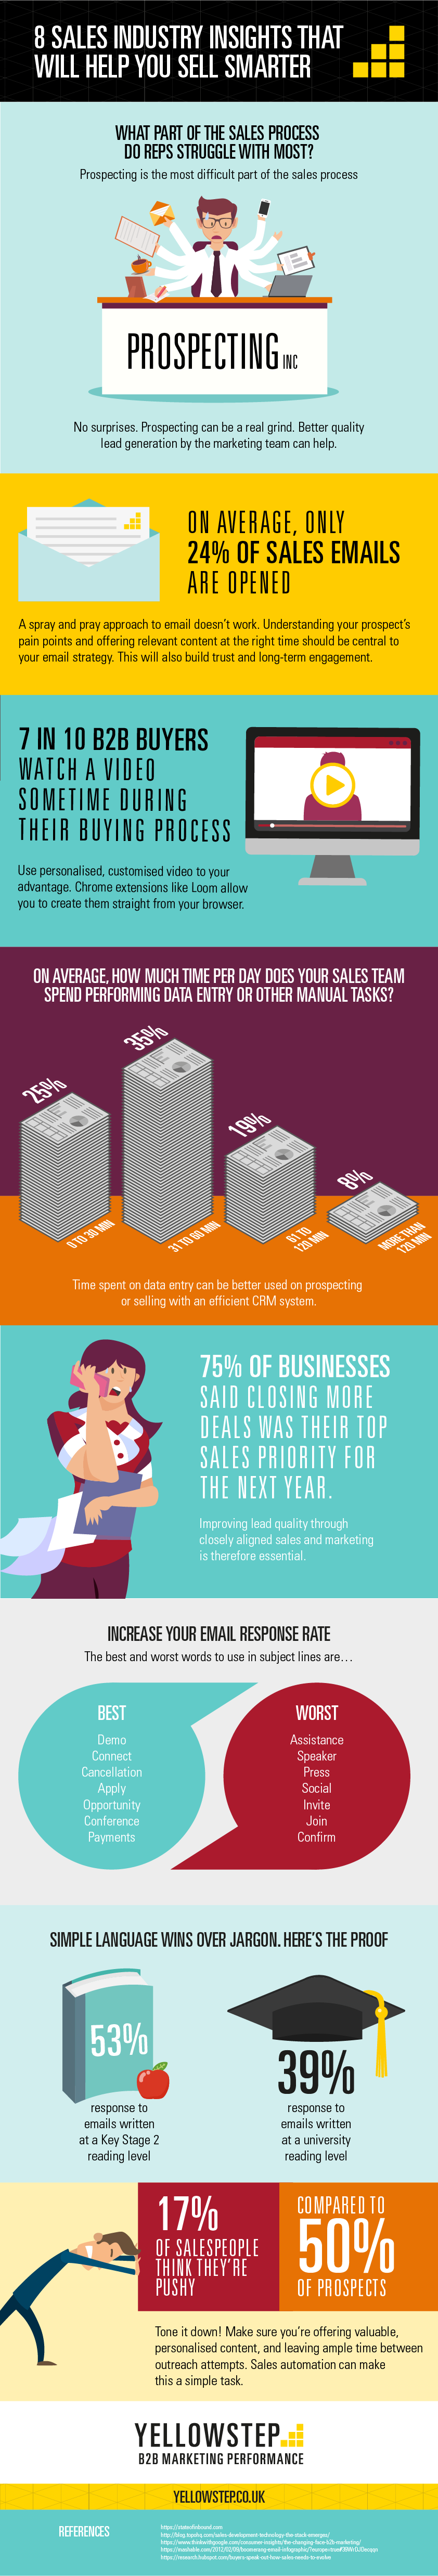 8 Sales Industry Insights That Will Help You Sell Smarter [Infographic]